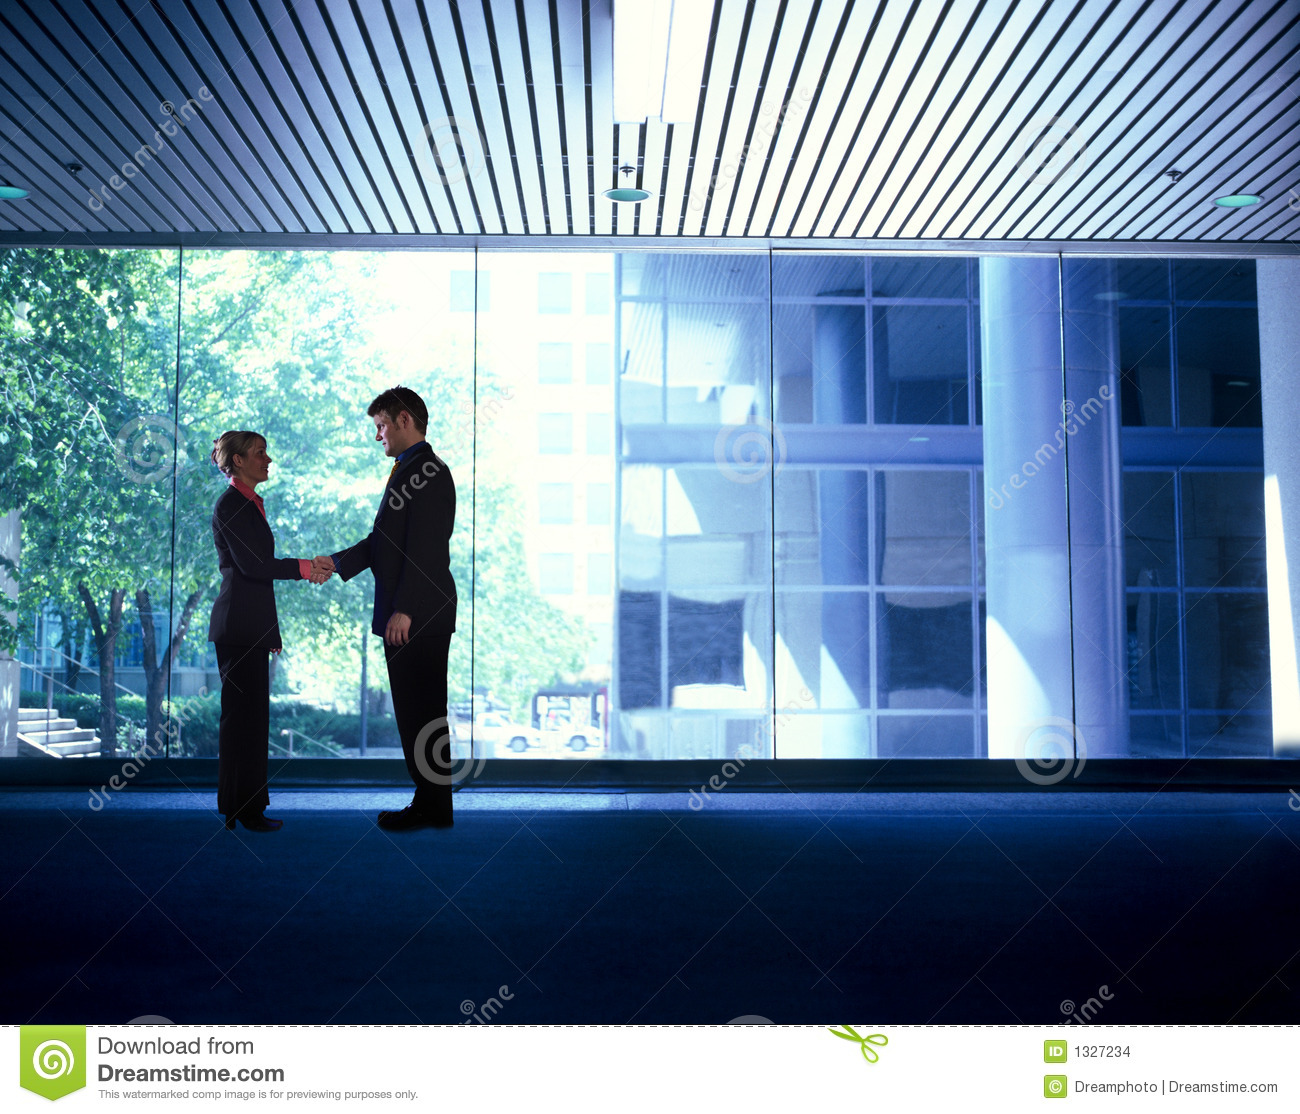 Business People Handshake Stock Images - Image: 1327234